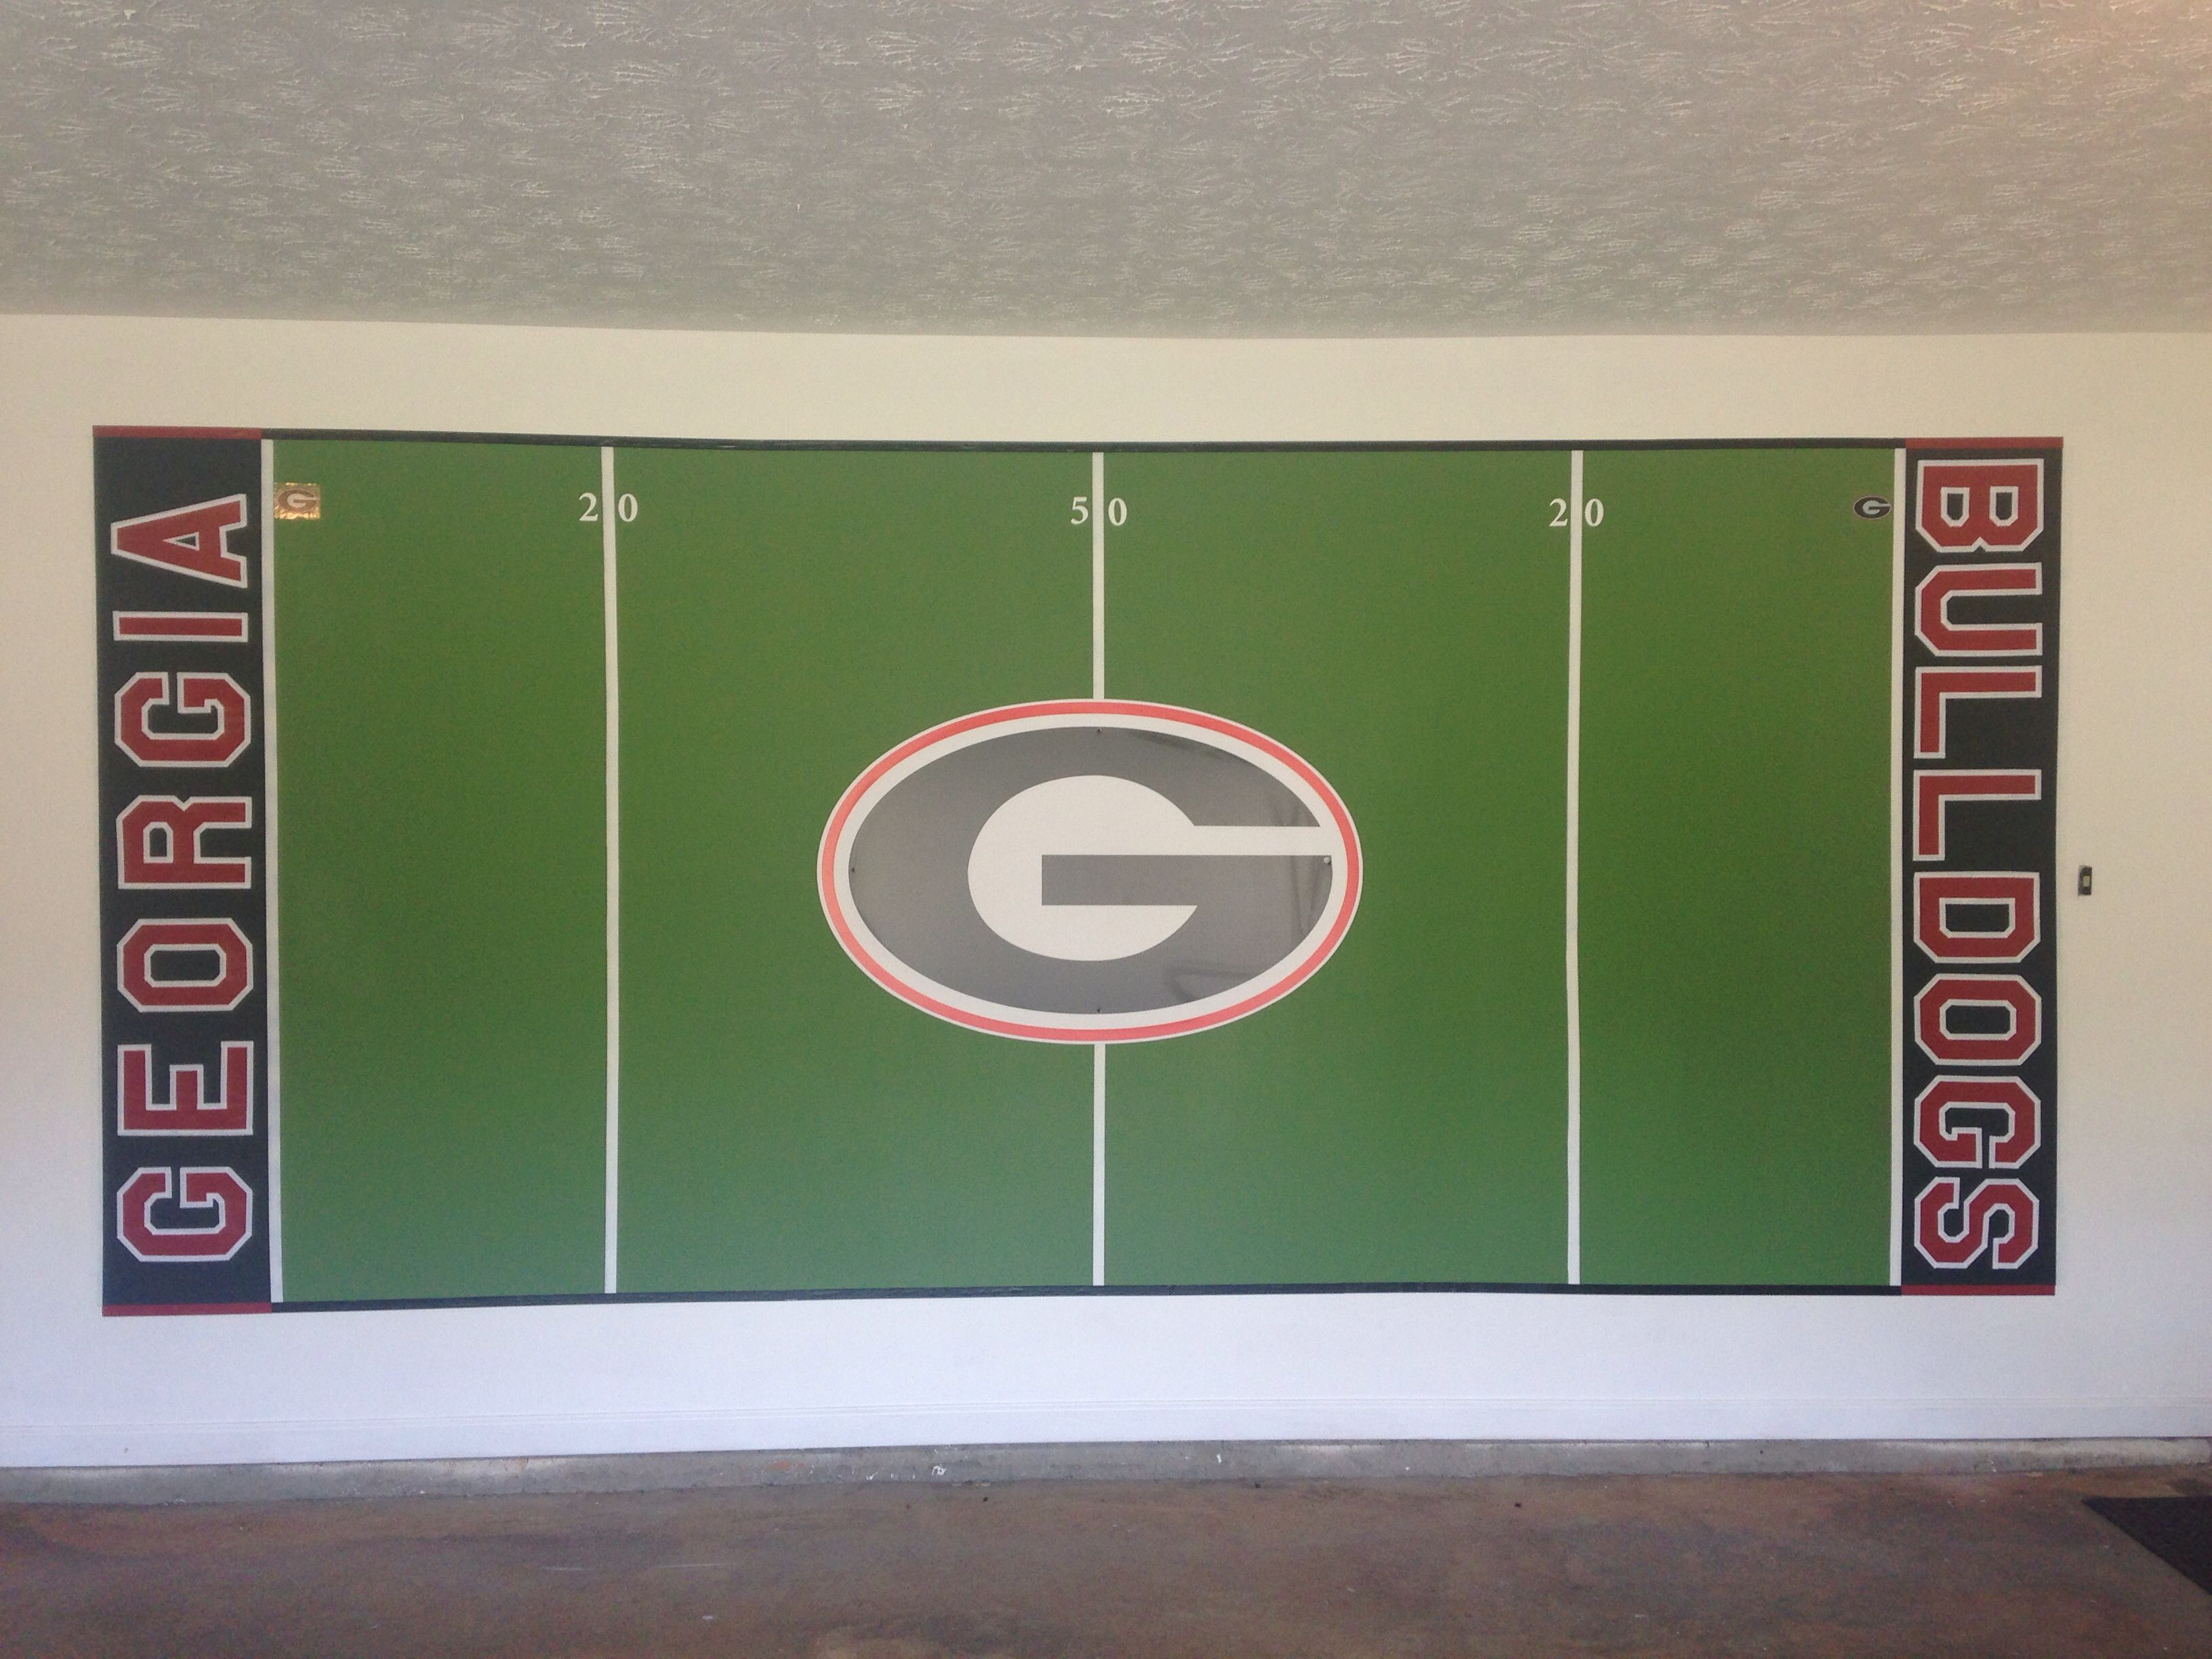 #fancave #mancave #godawgs garage painting